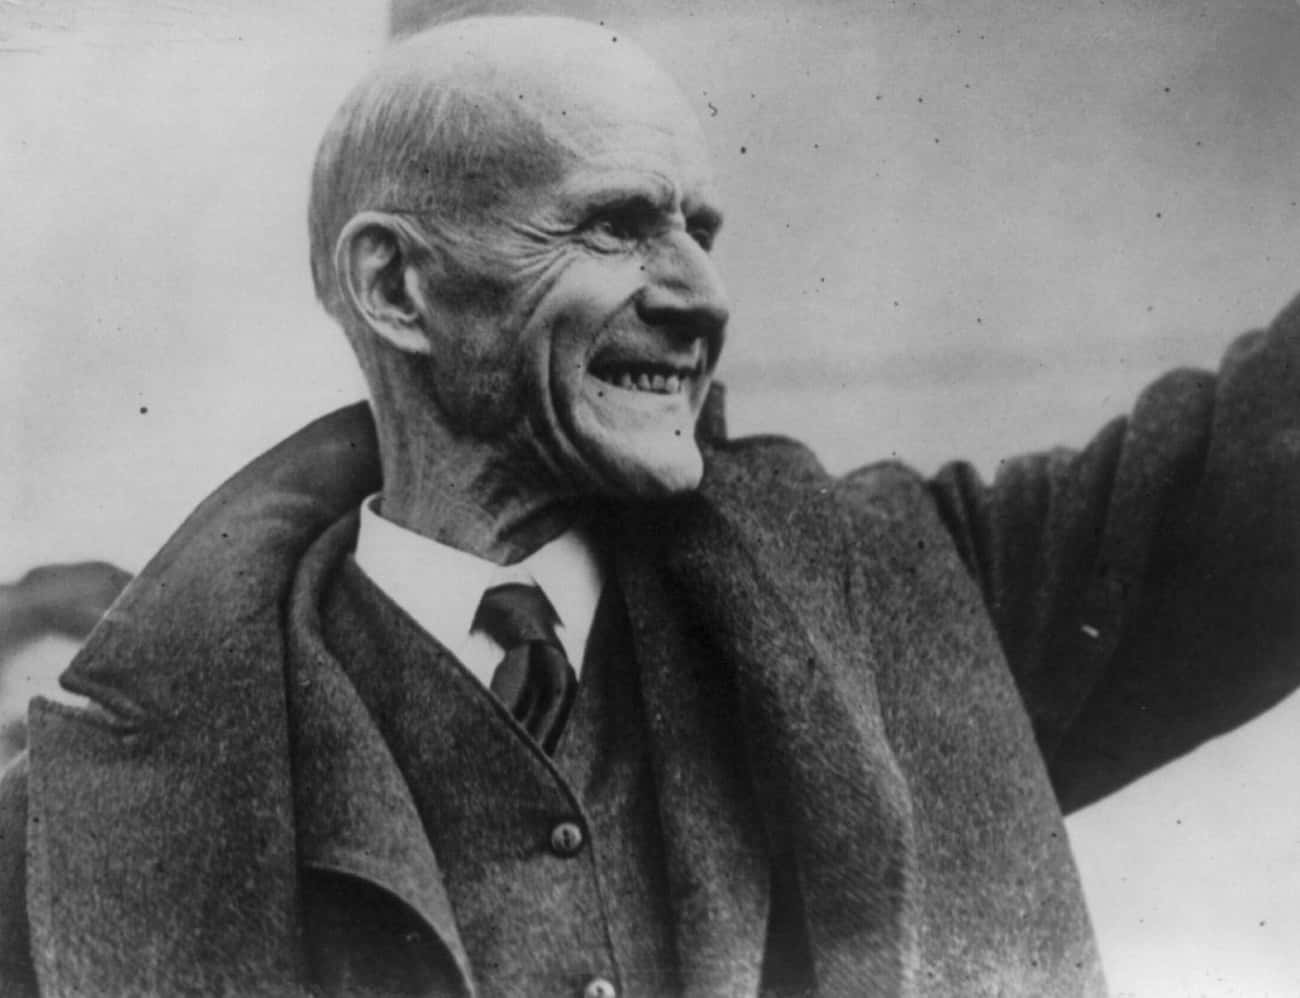 Eugene V. Debs, Who Got Nearly is listed (or ranked) 4 on the list 10 American Politicians You've Never Heard of Who Basically Changed History